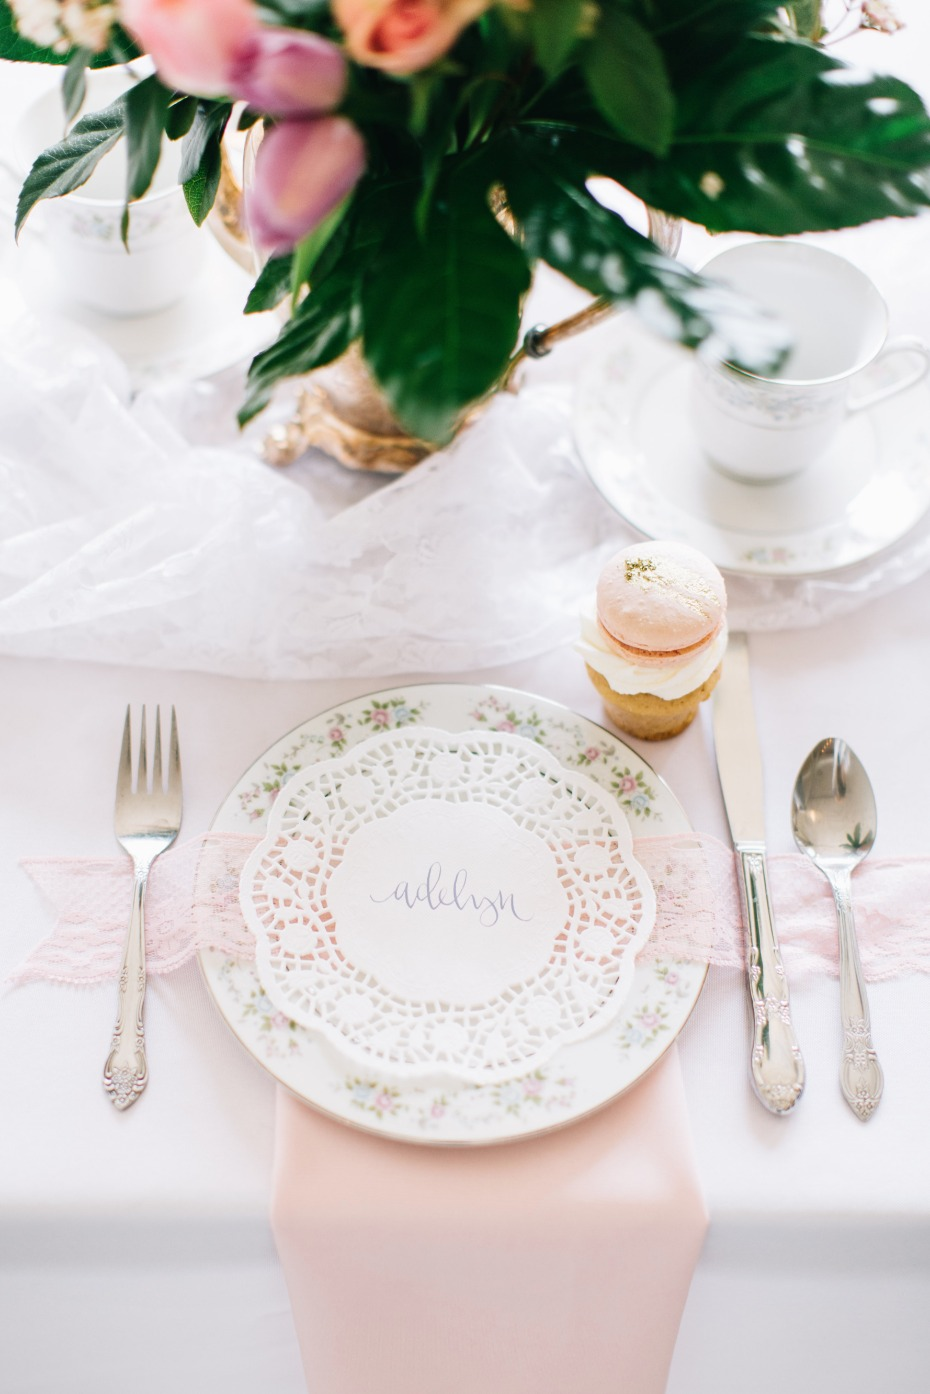 elegant and classic pink and white table setting